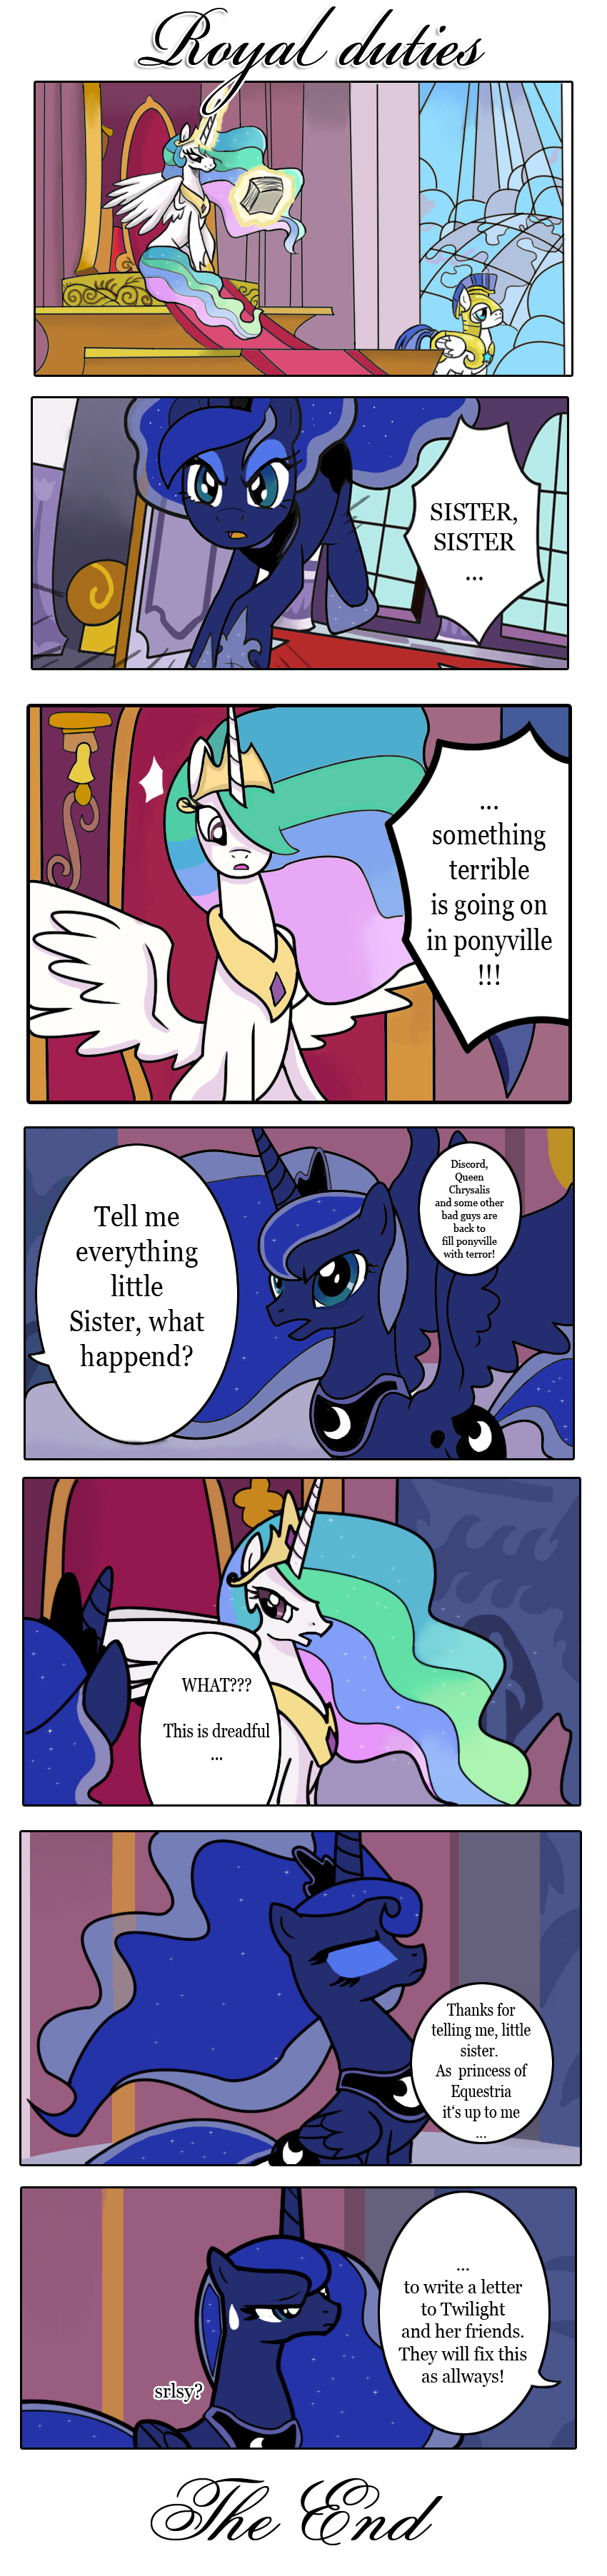 Royal duties by schnuffitrunks